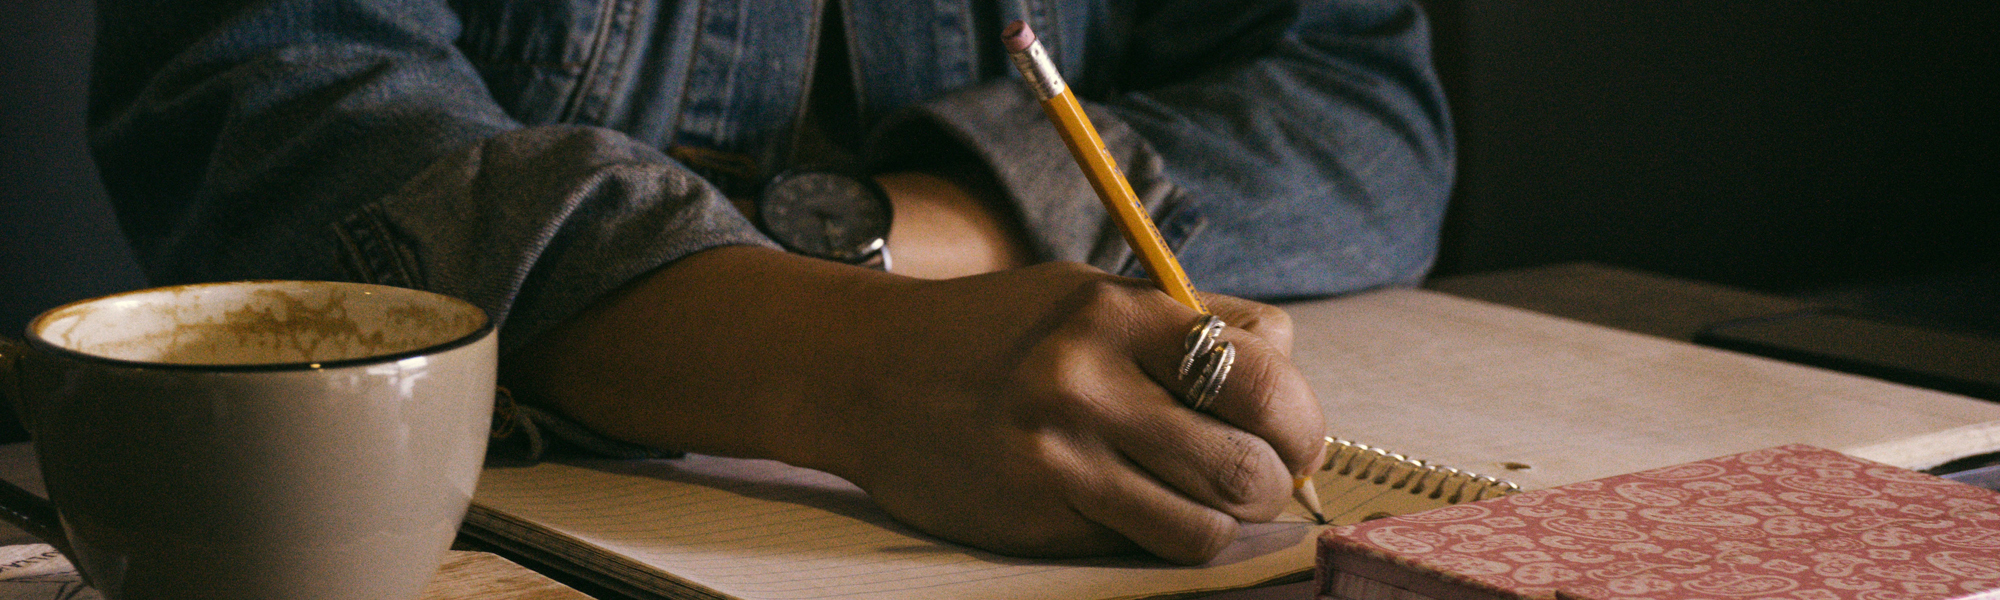 Person writing in a notebook. Photo by Kat Stokes on Unsplash